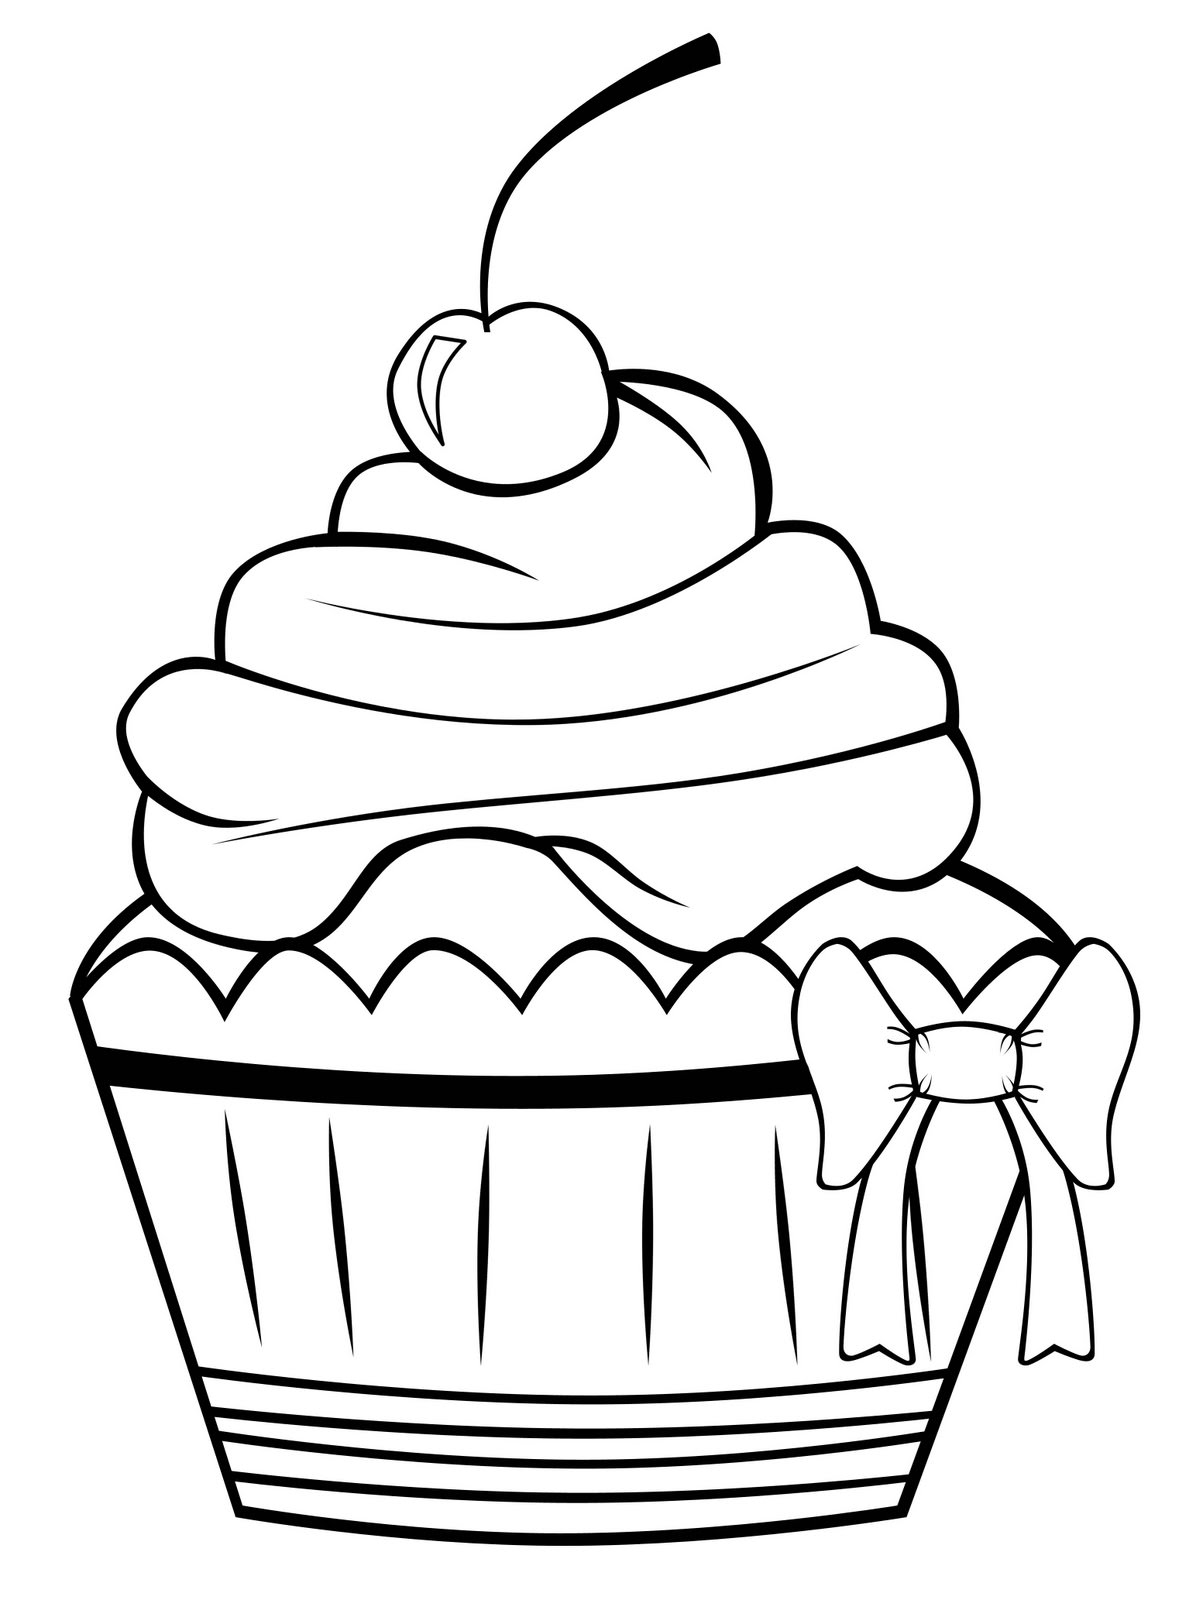 cupcake coloriage basic4